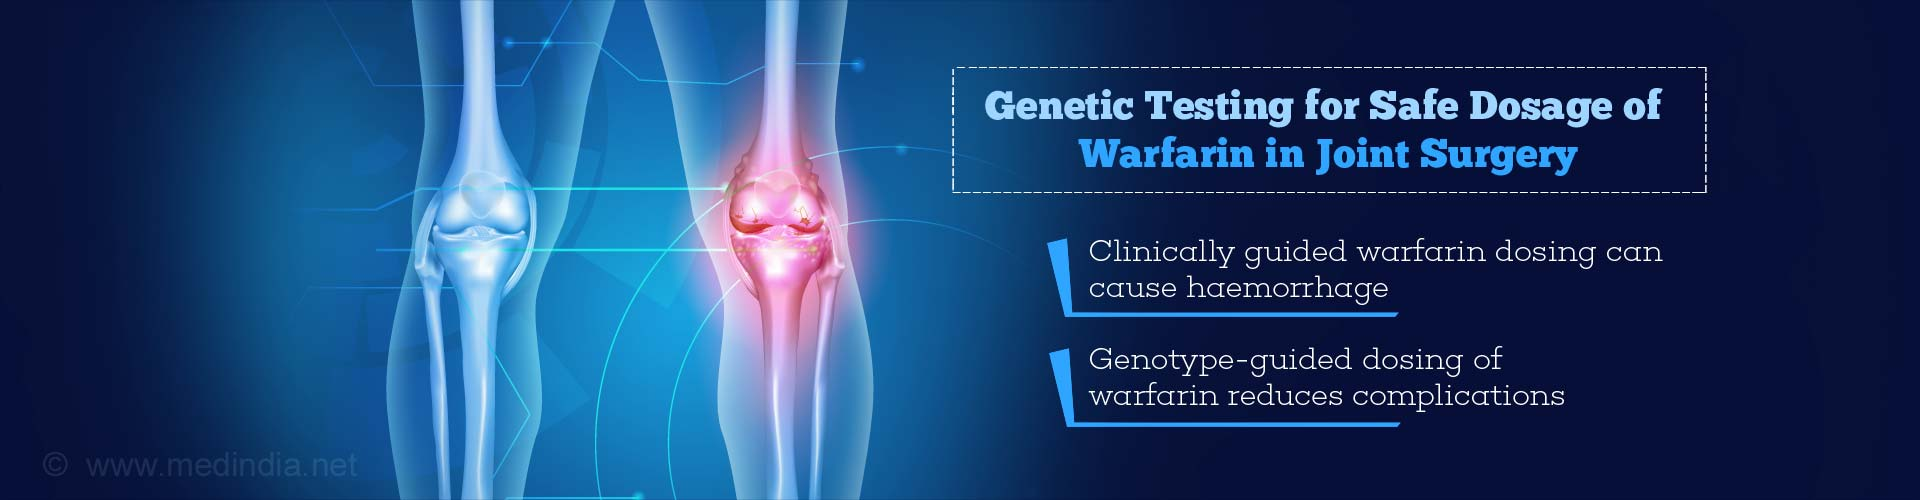 Genetic Testing for Dosage of Warfarin in Joint Surgery